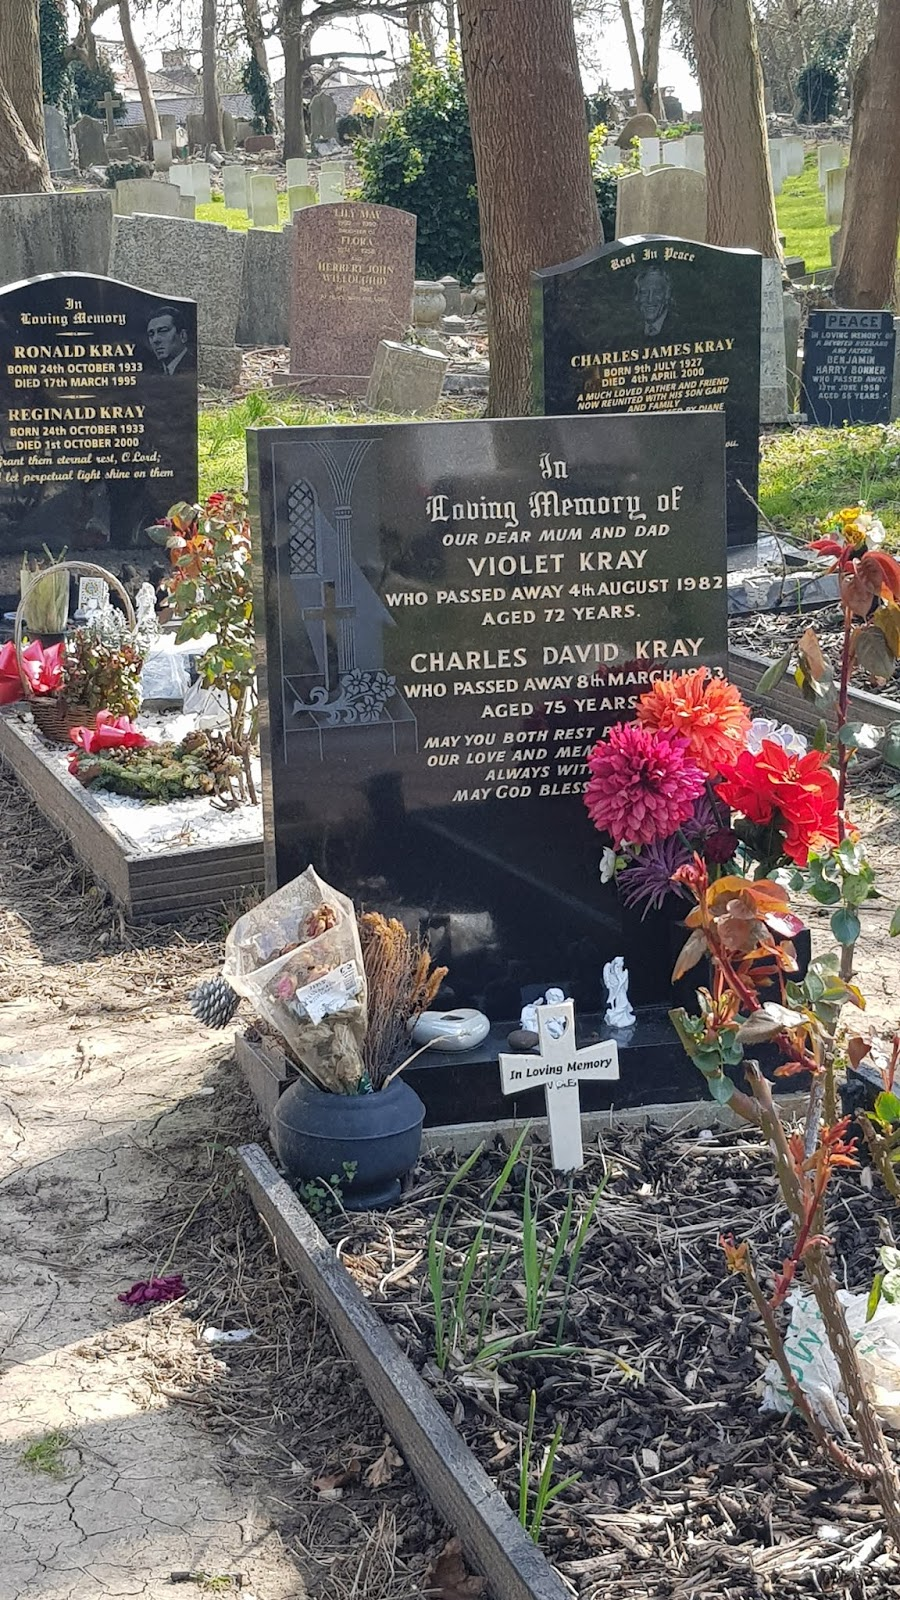 Well tended graves of criminals Ronald and Reginald Kray and their mother Violet in East London